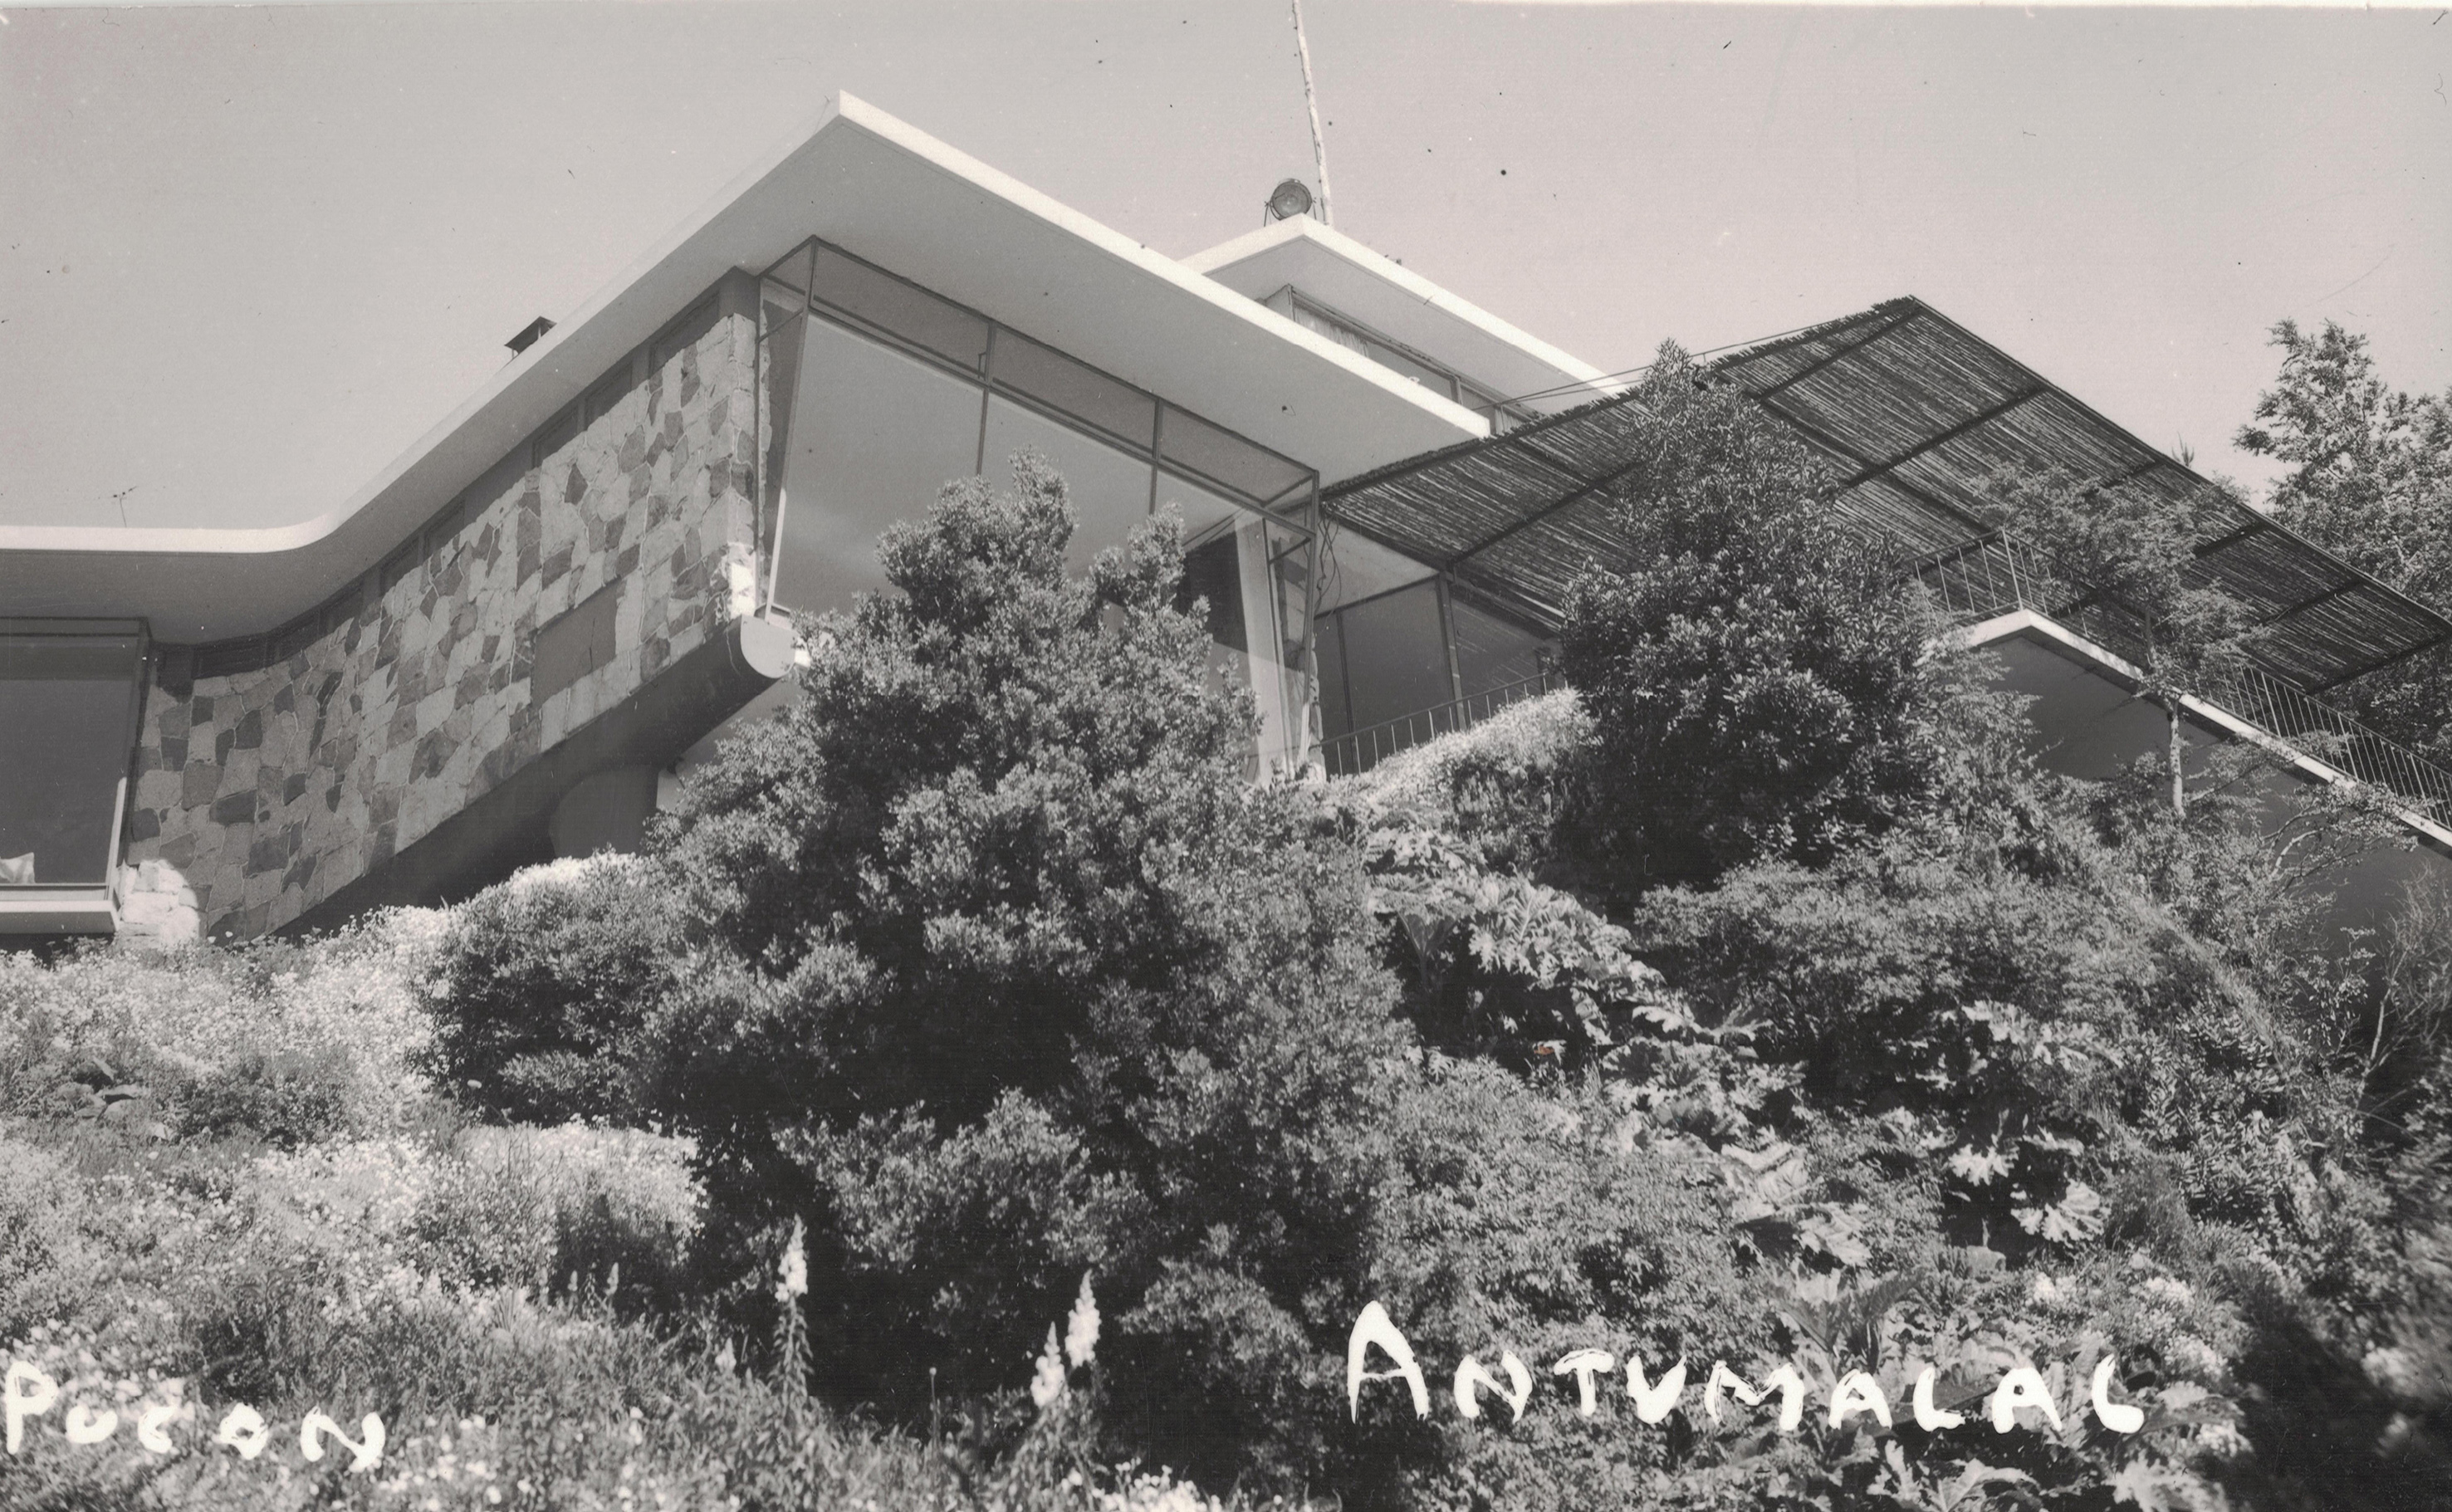 Enterreno - Fotos históricas de chile - fotos antiguas de Chile - Hotel Antumalal, sin año